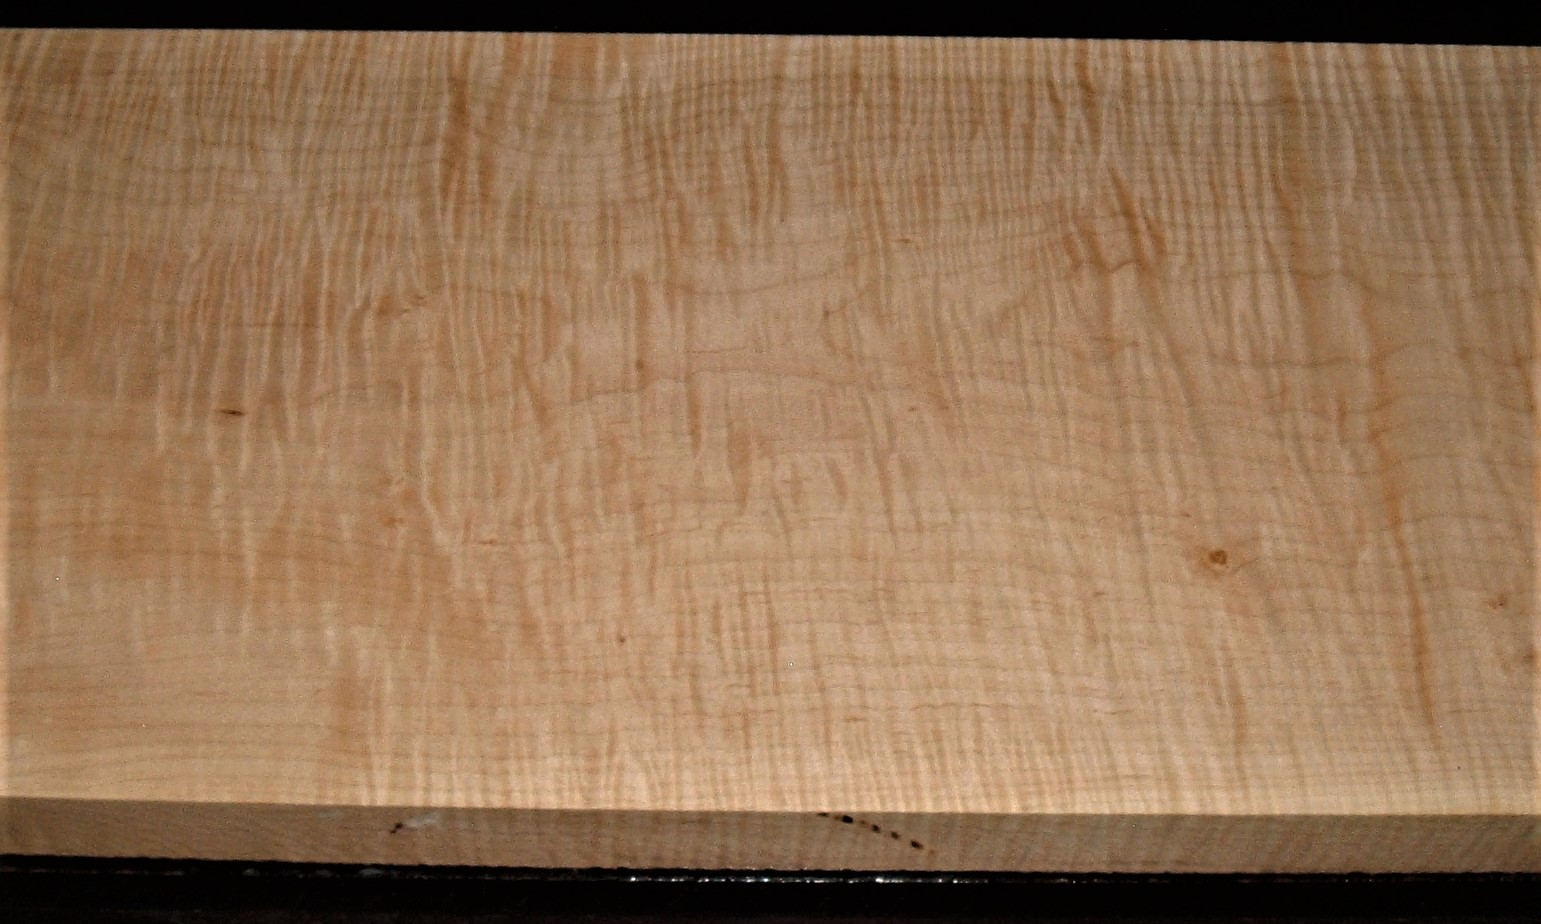 M2007-636JJ, 1-3/4x13-3/4x56, Curly Tiger Maple